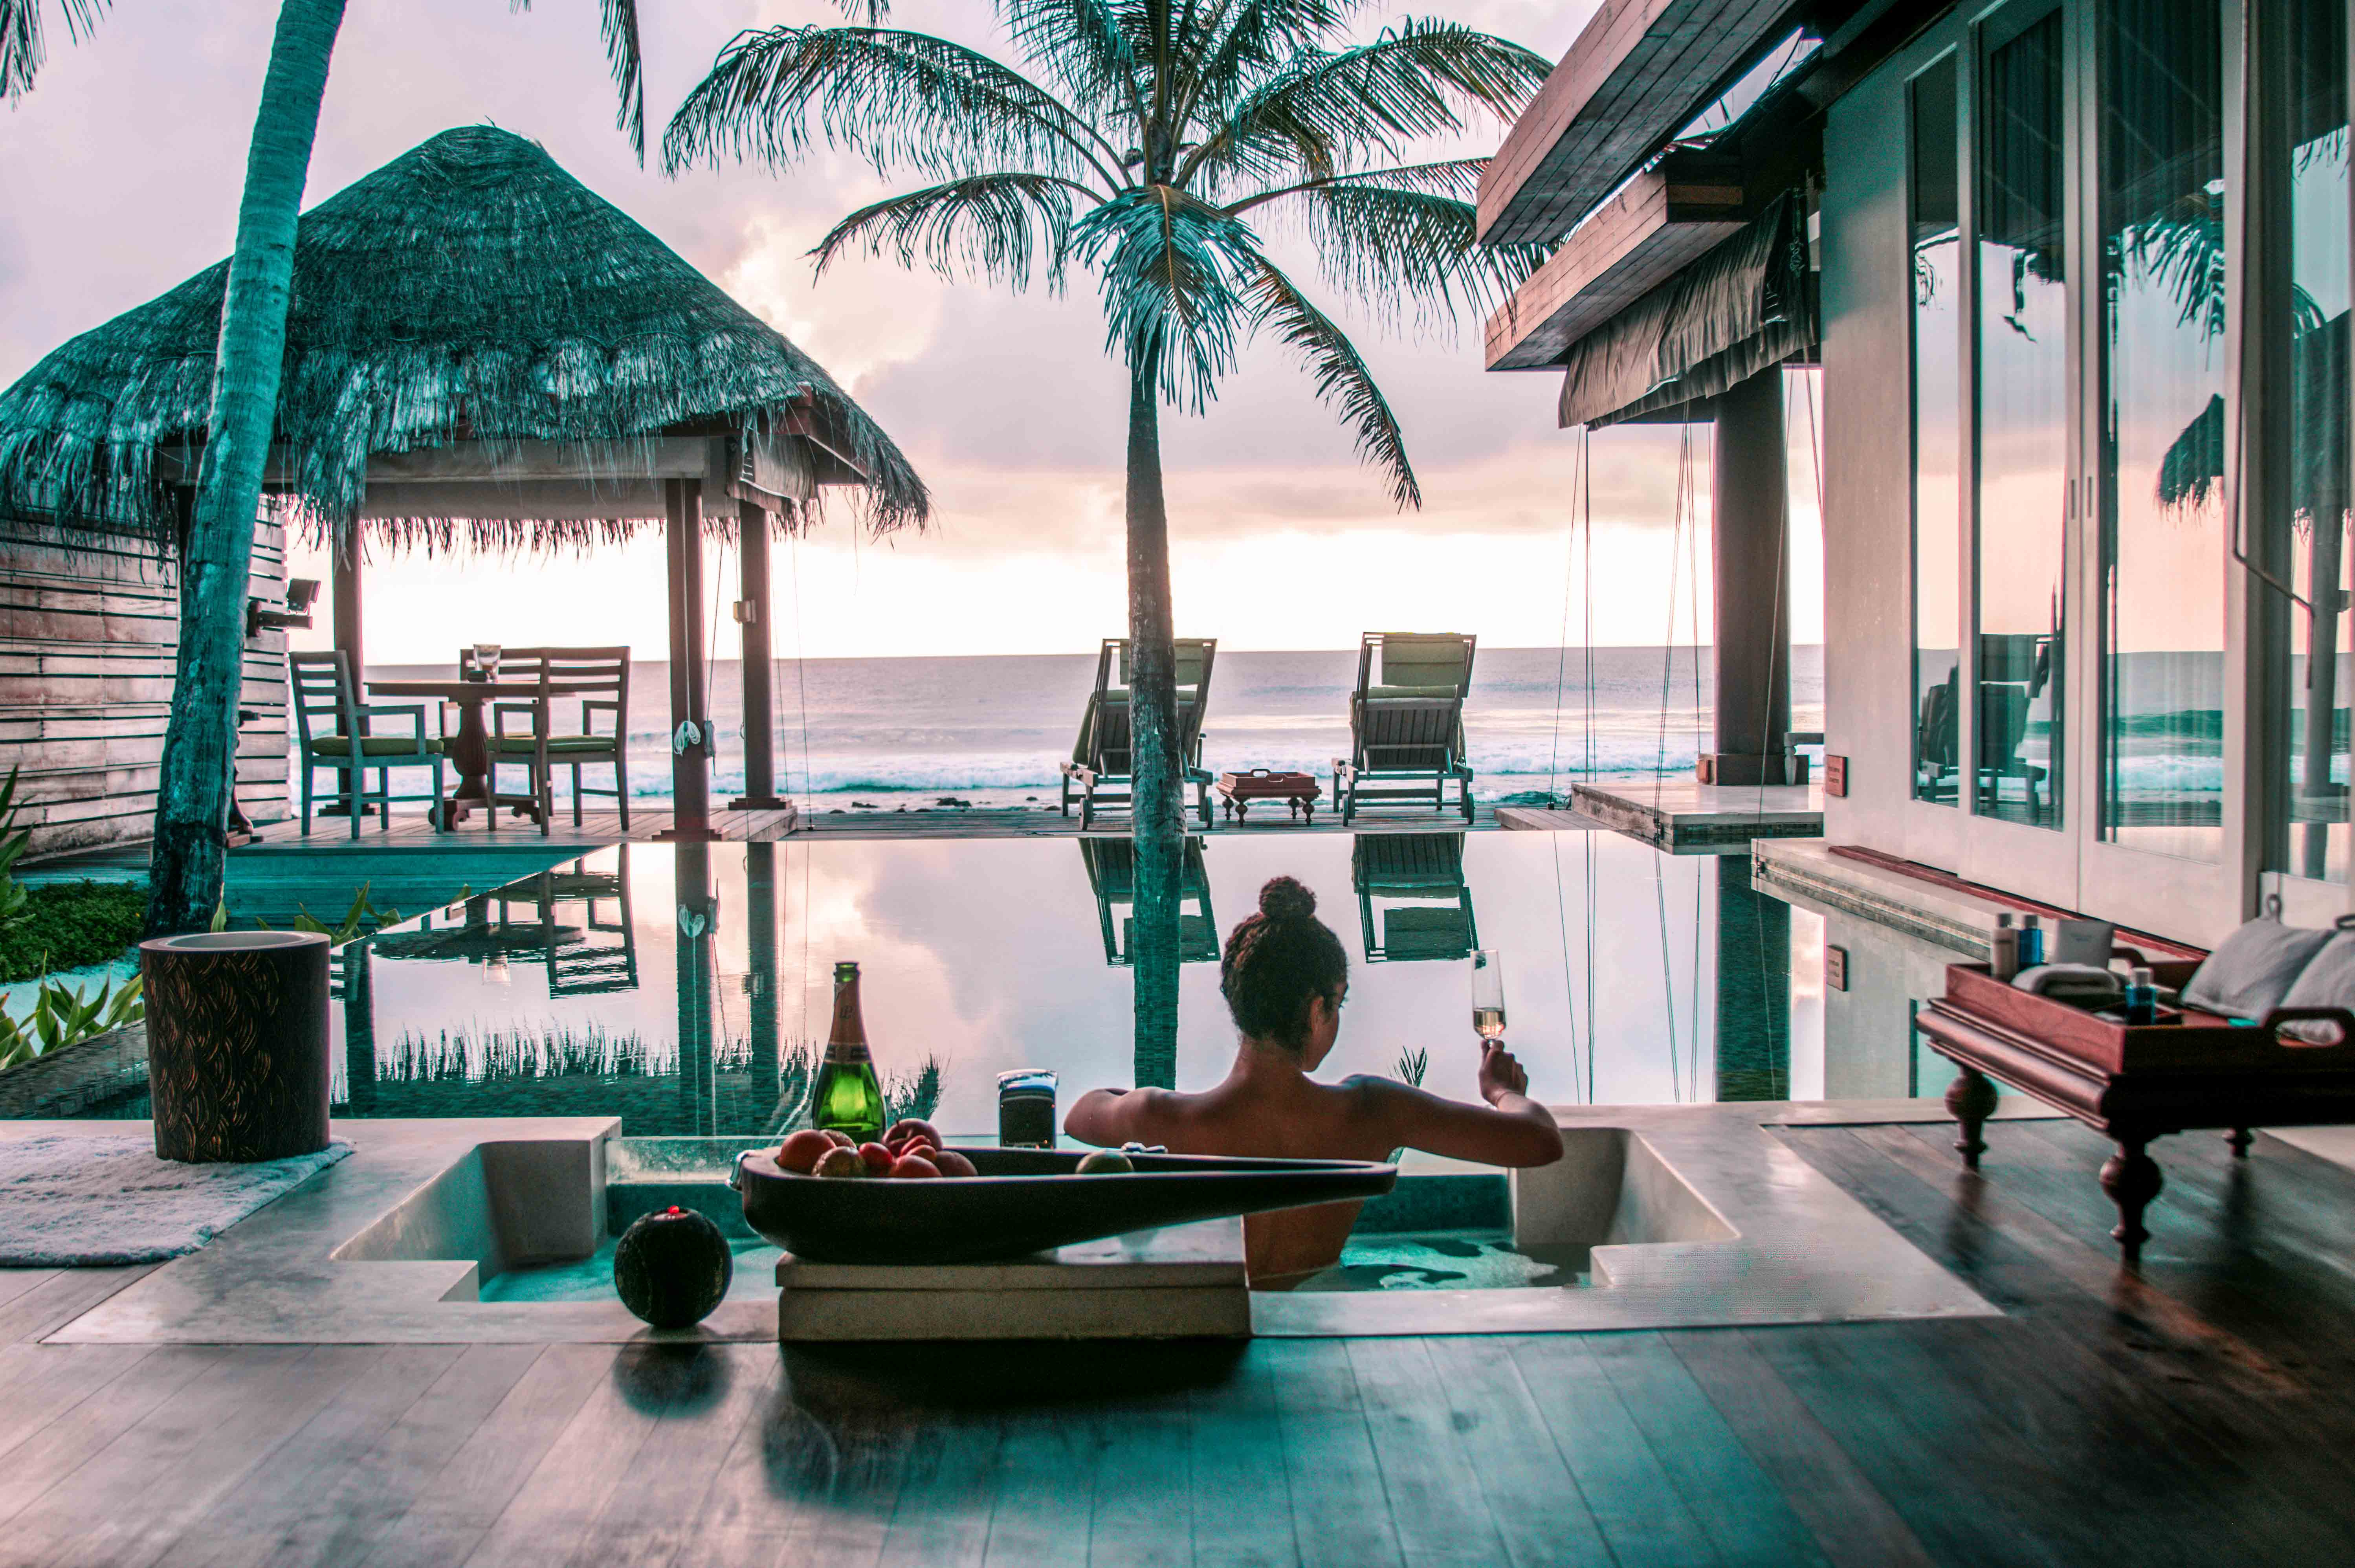 Here's What the World's Best Resort Looks Like